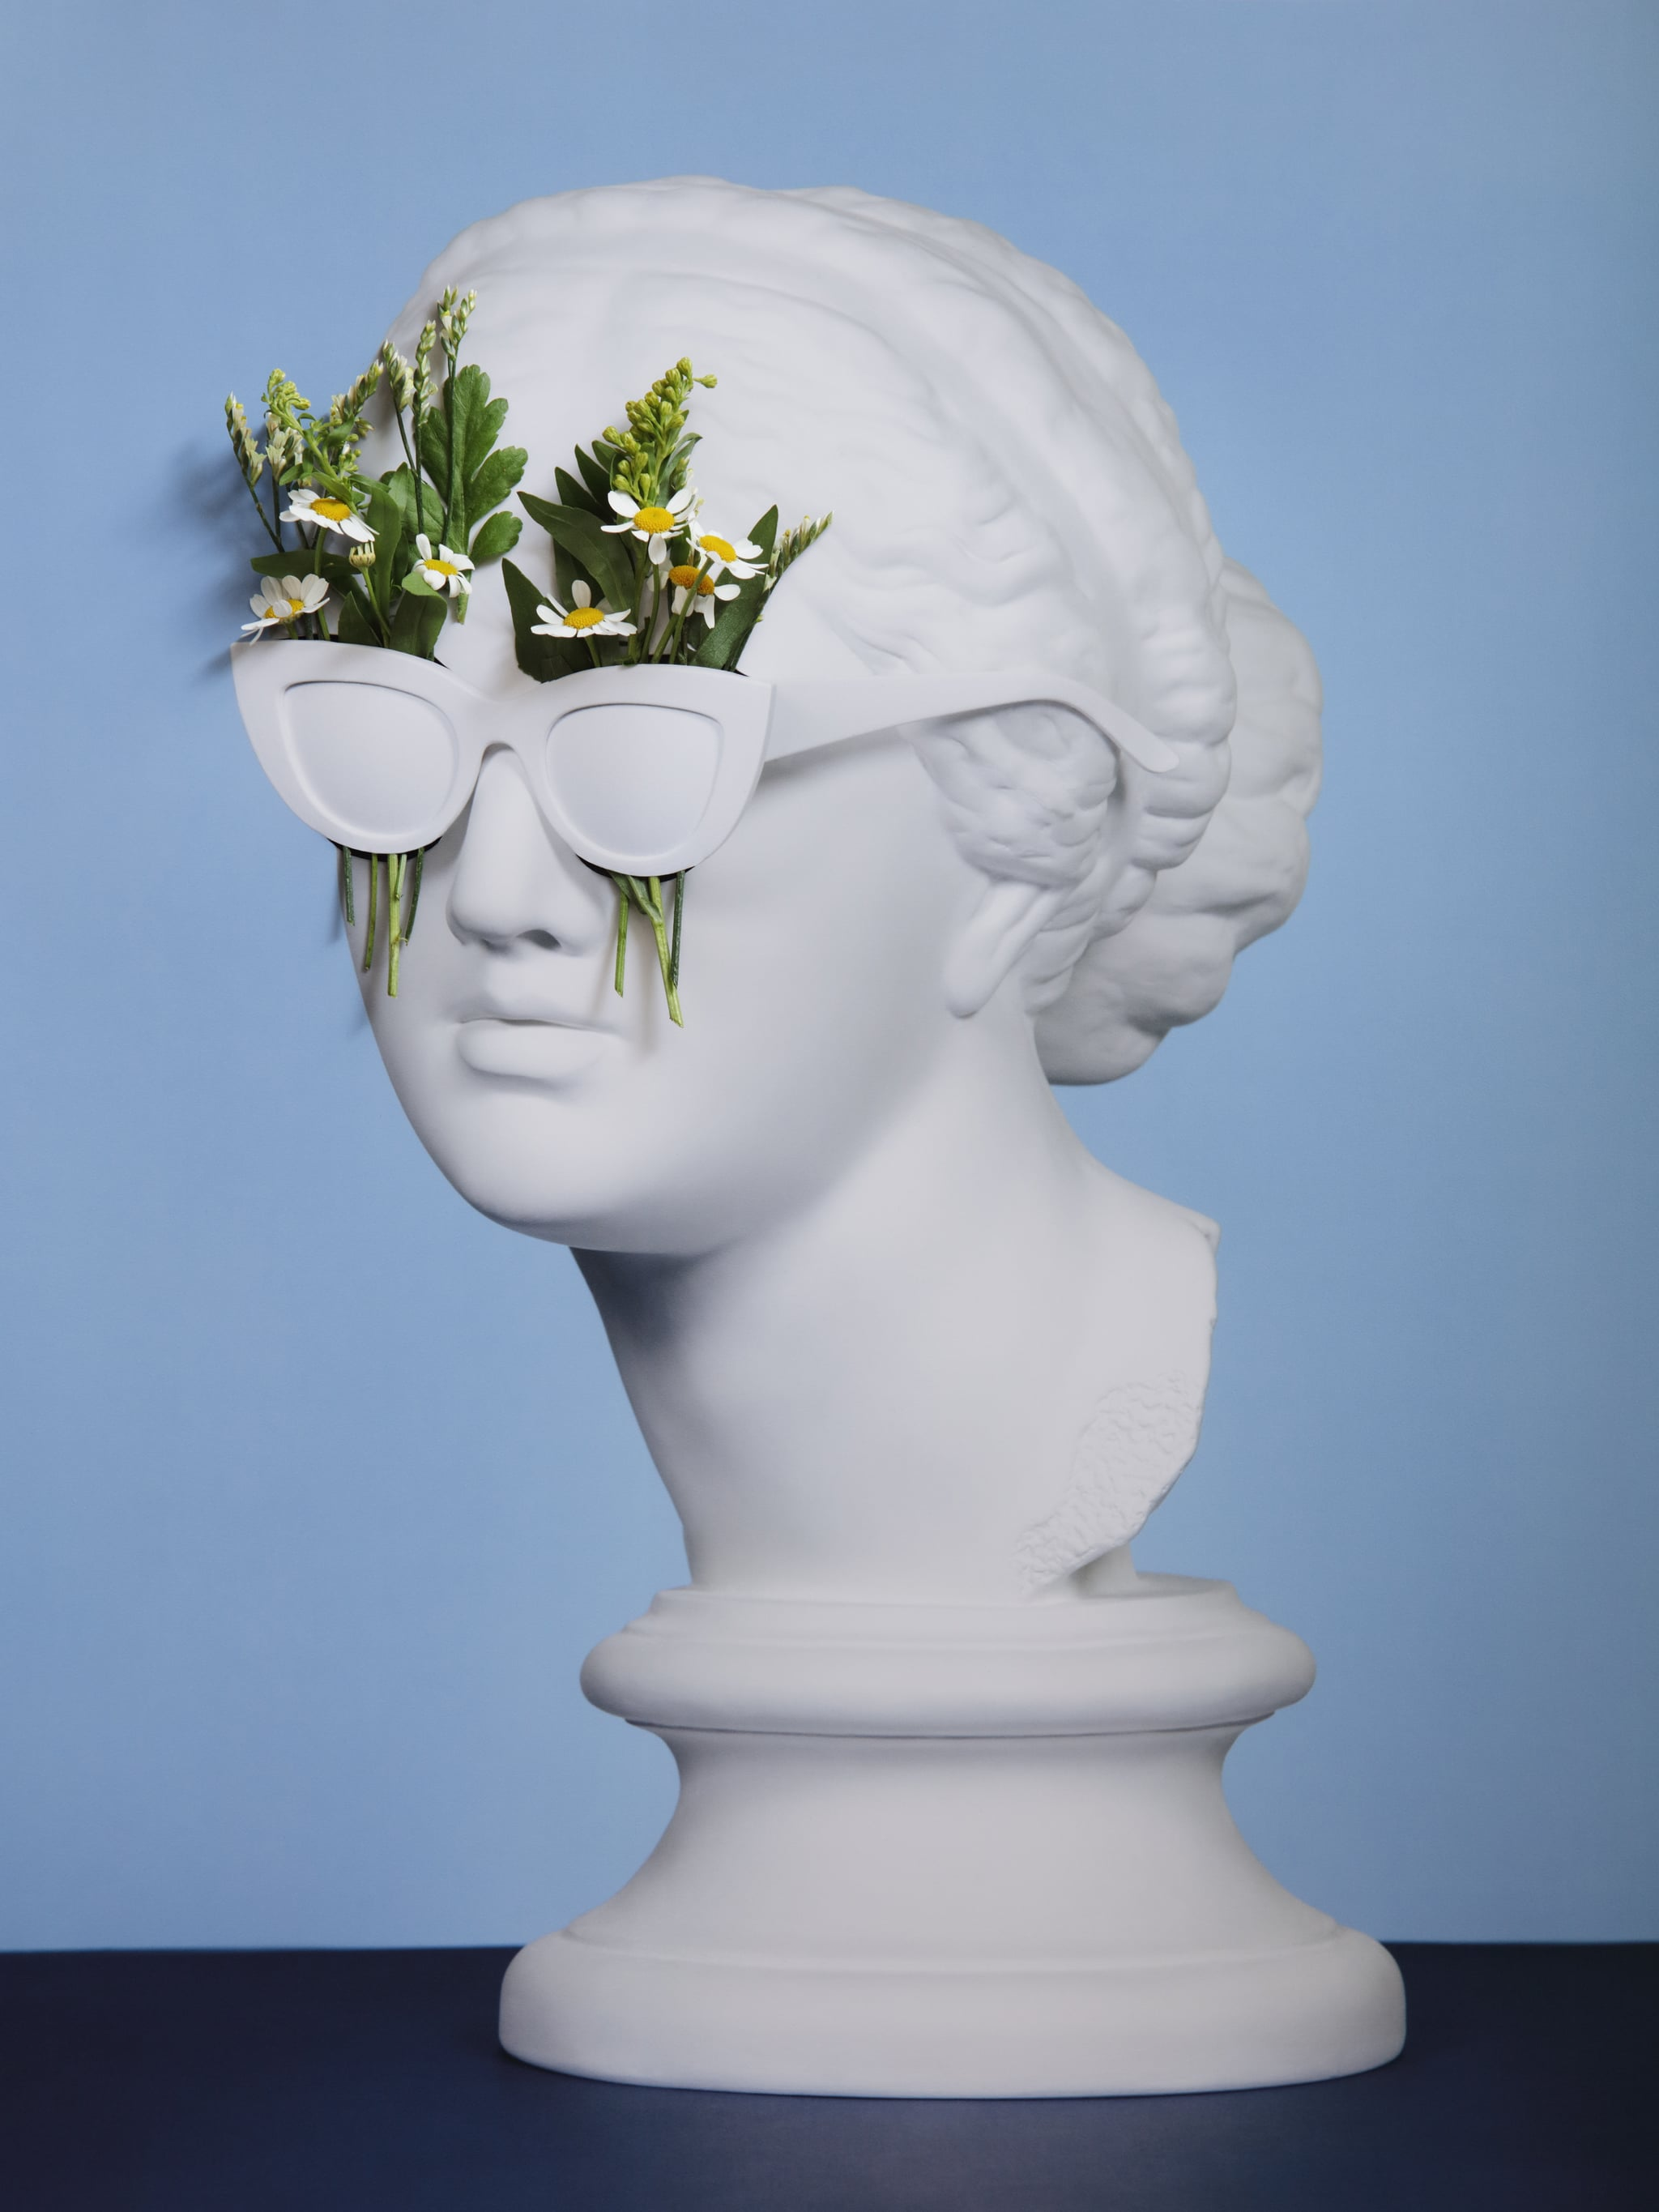 Analog collage with plaster head model (mass produced replica of Head of Aphrodite of Knidos) and plants